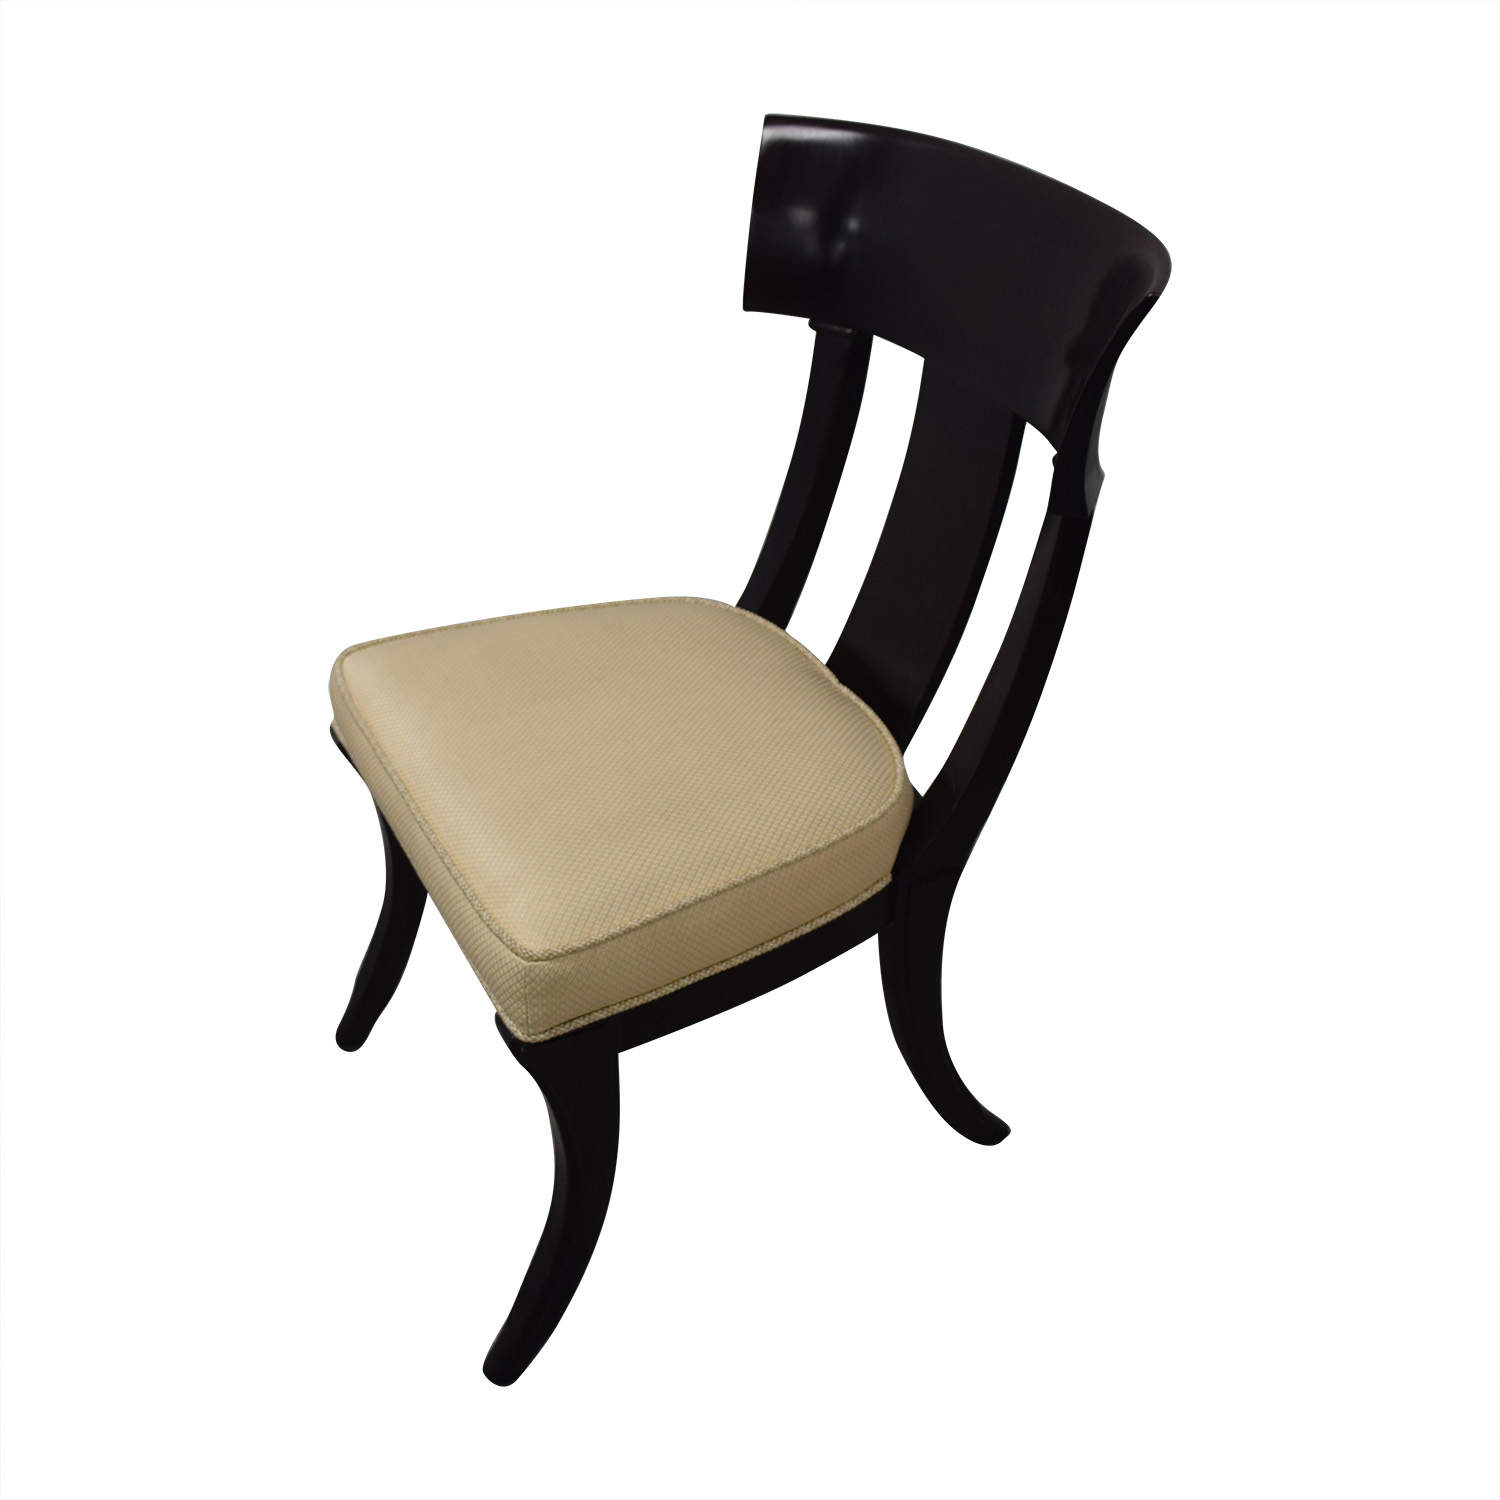 shop Henredon Black with Beige Upholstery Dining Chairs Henredon Furniture Dining Chairs